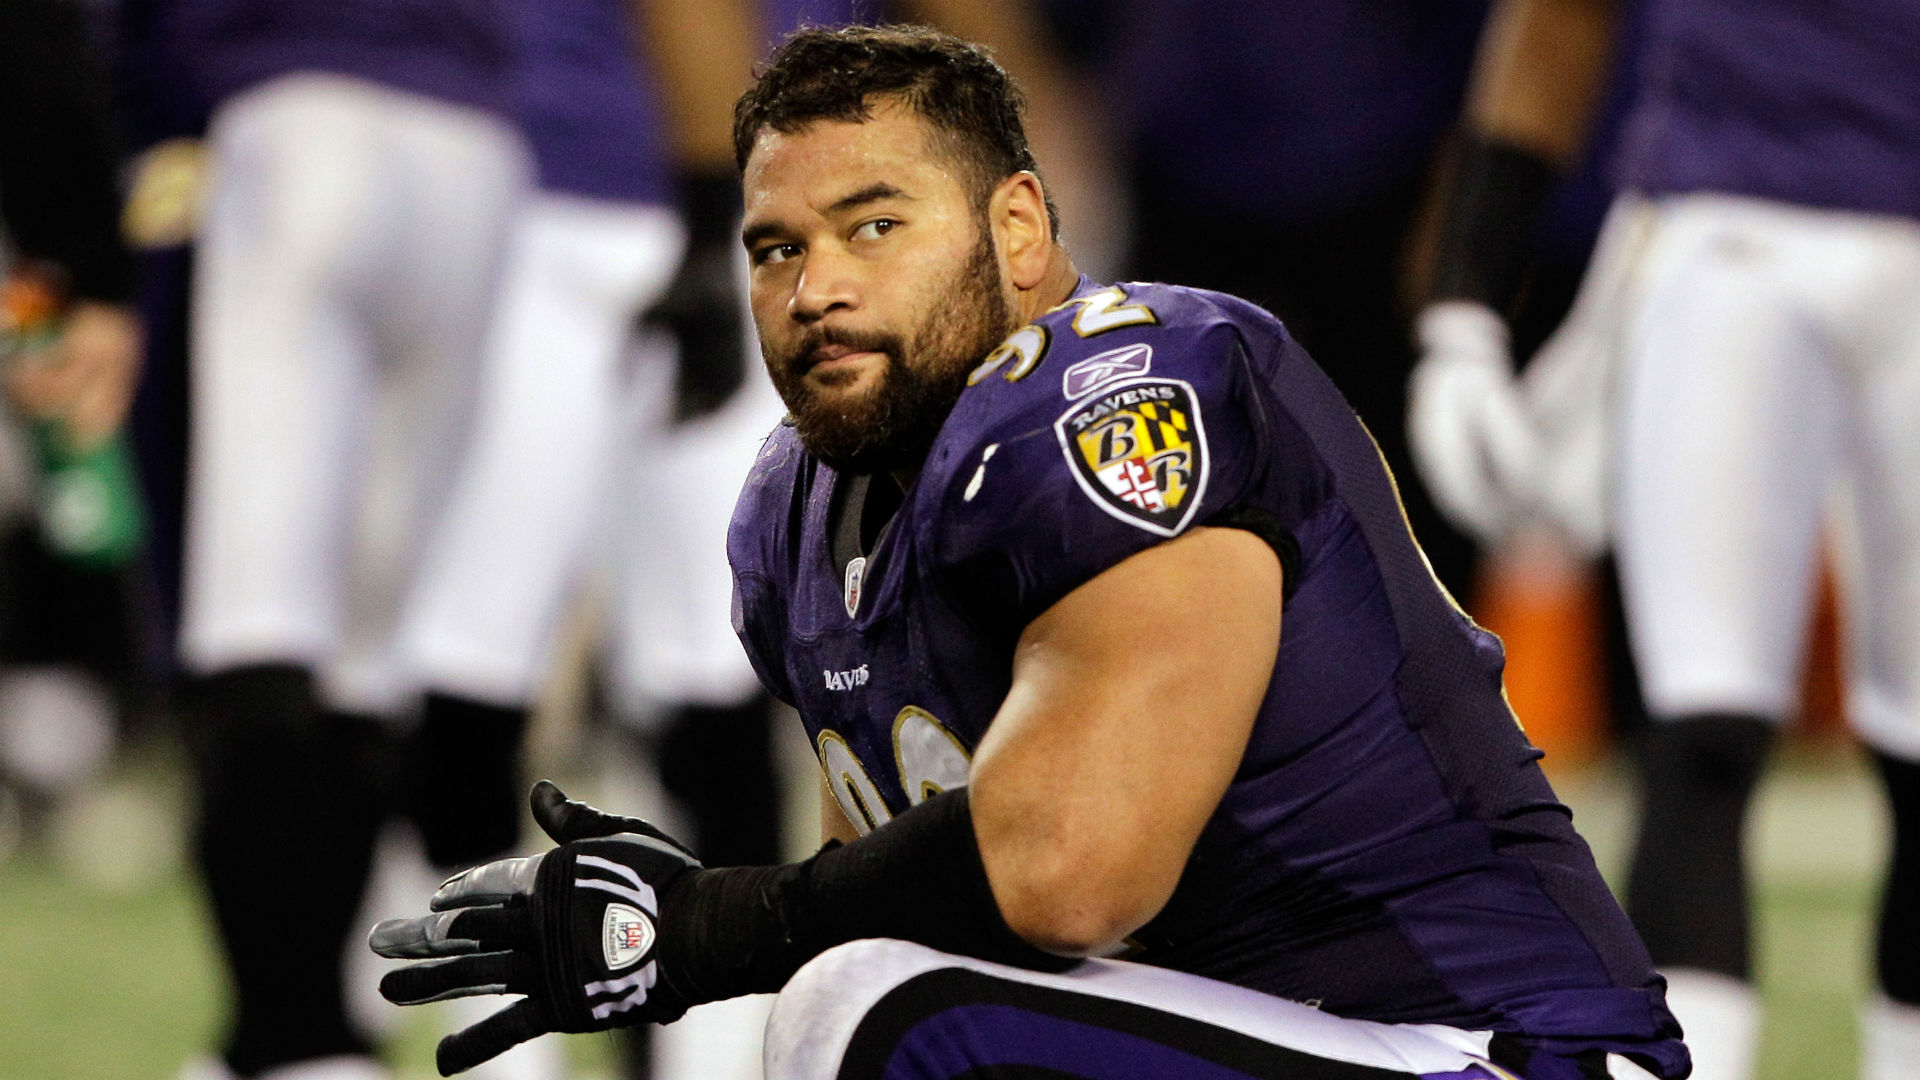 Haloti Ngata, Lions would like to extend relationship past this season